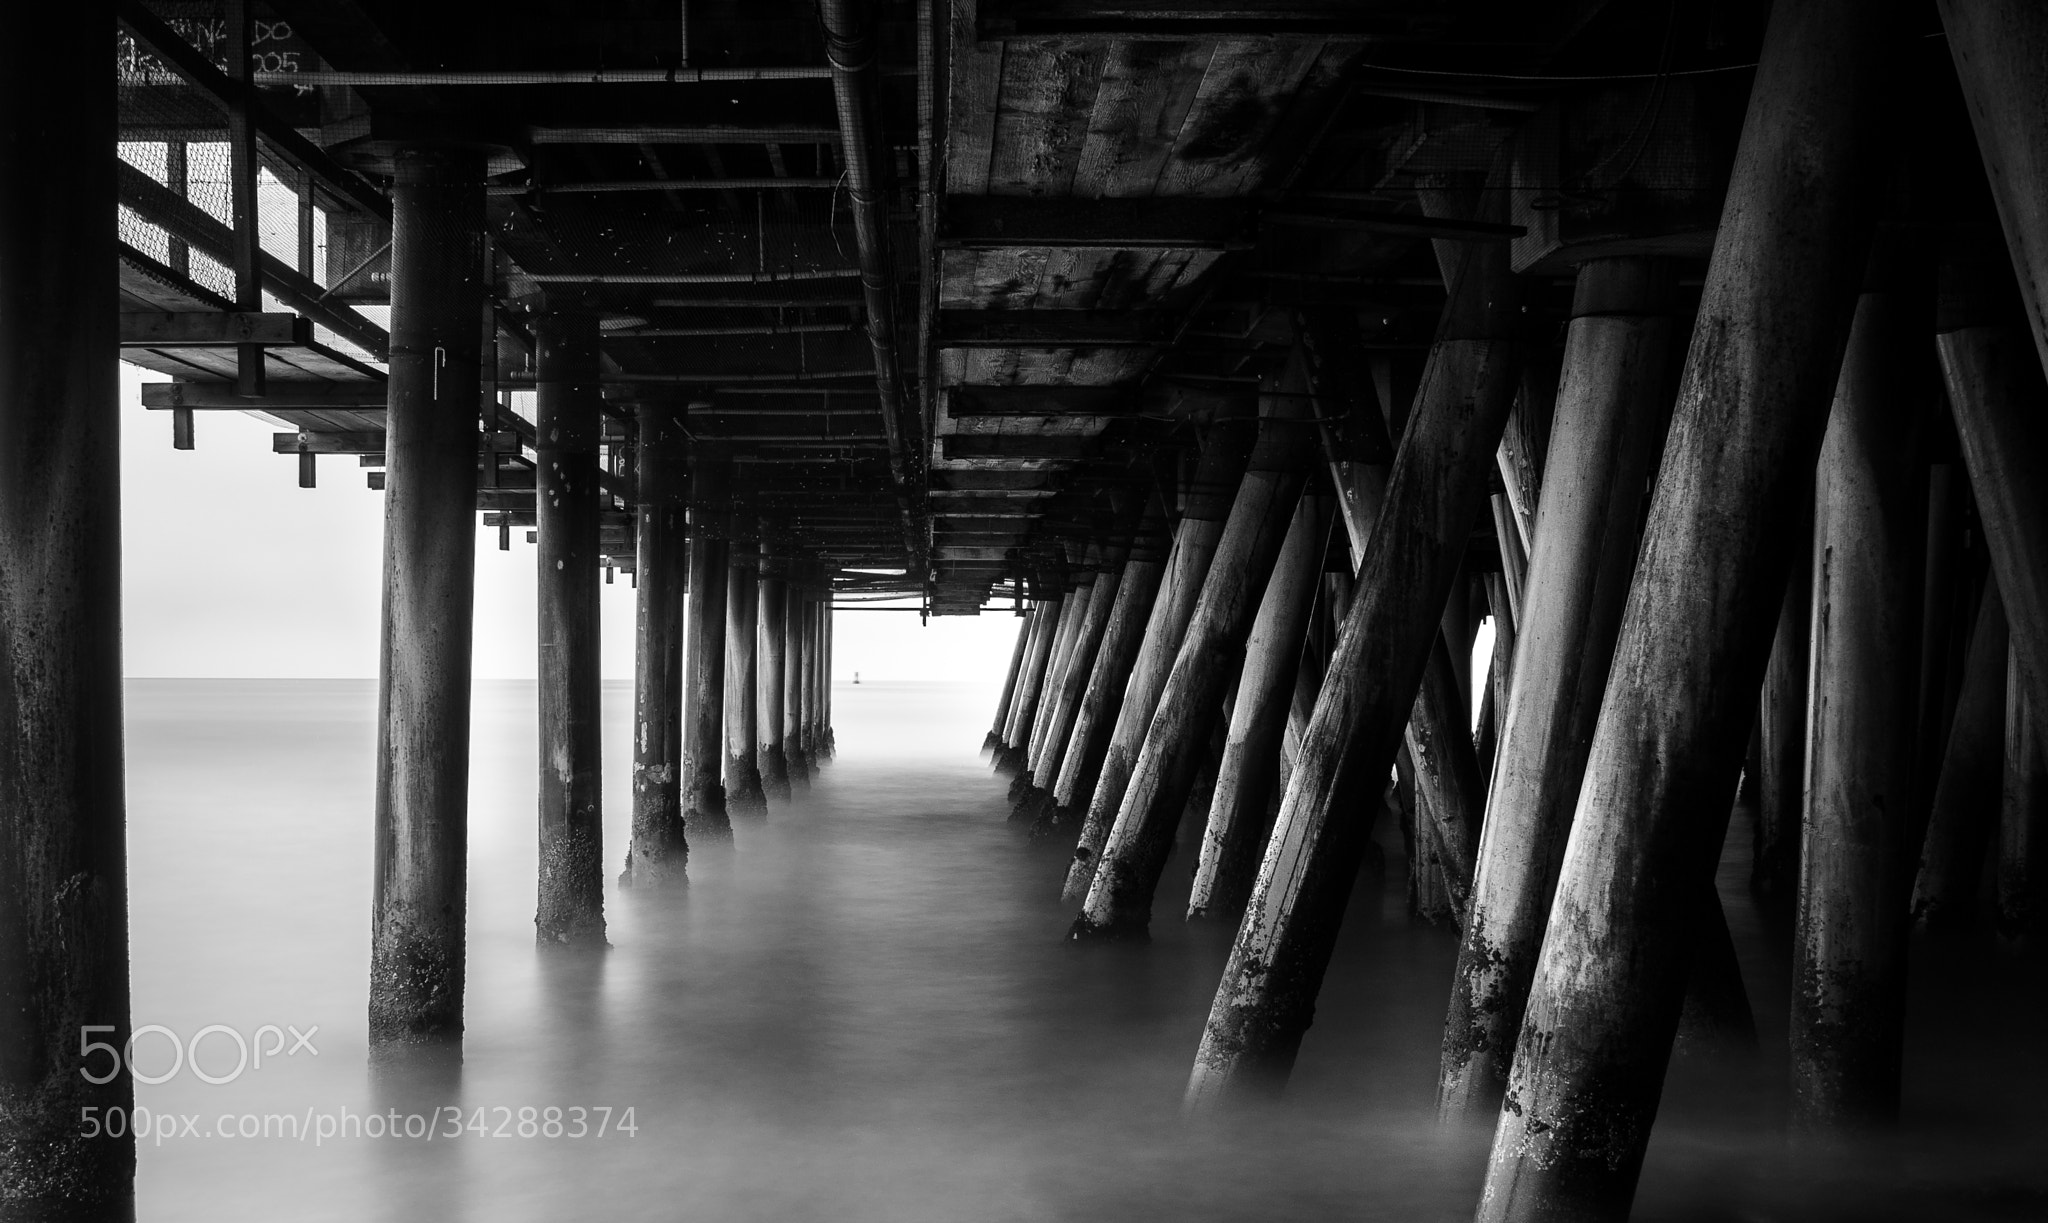 Photograph Under the Pier by Jeffery Wang on 500px